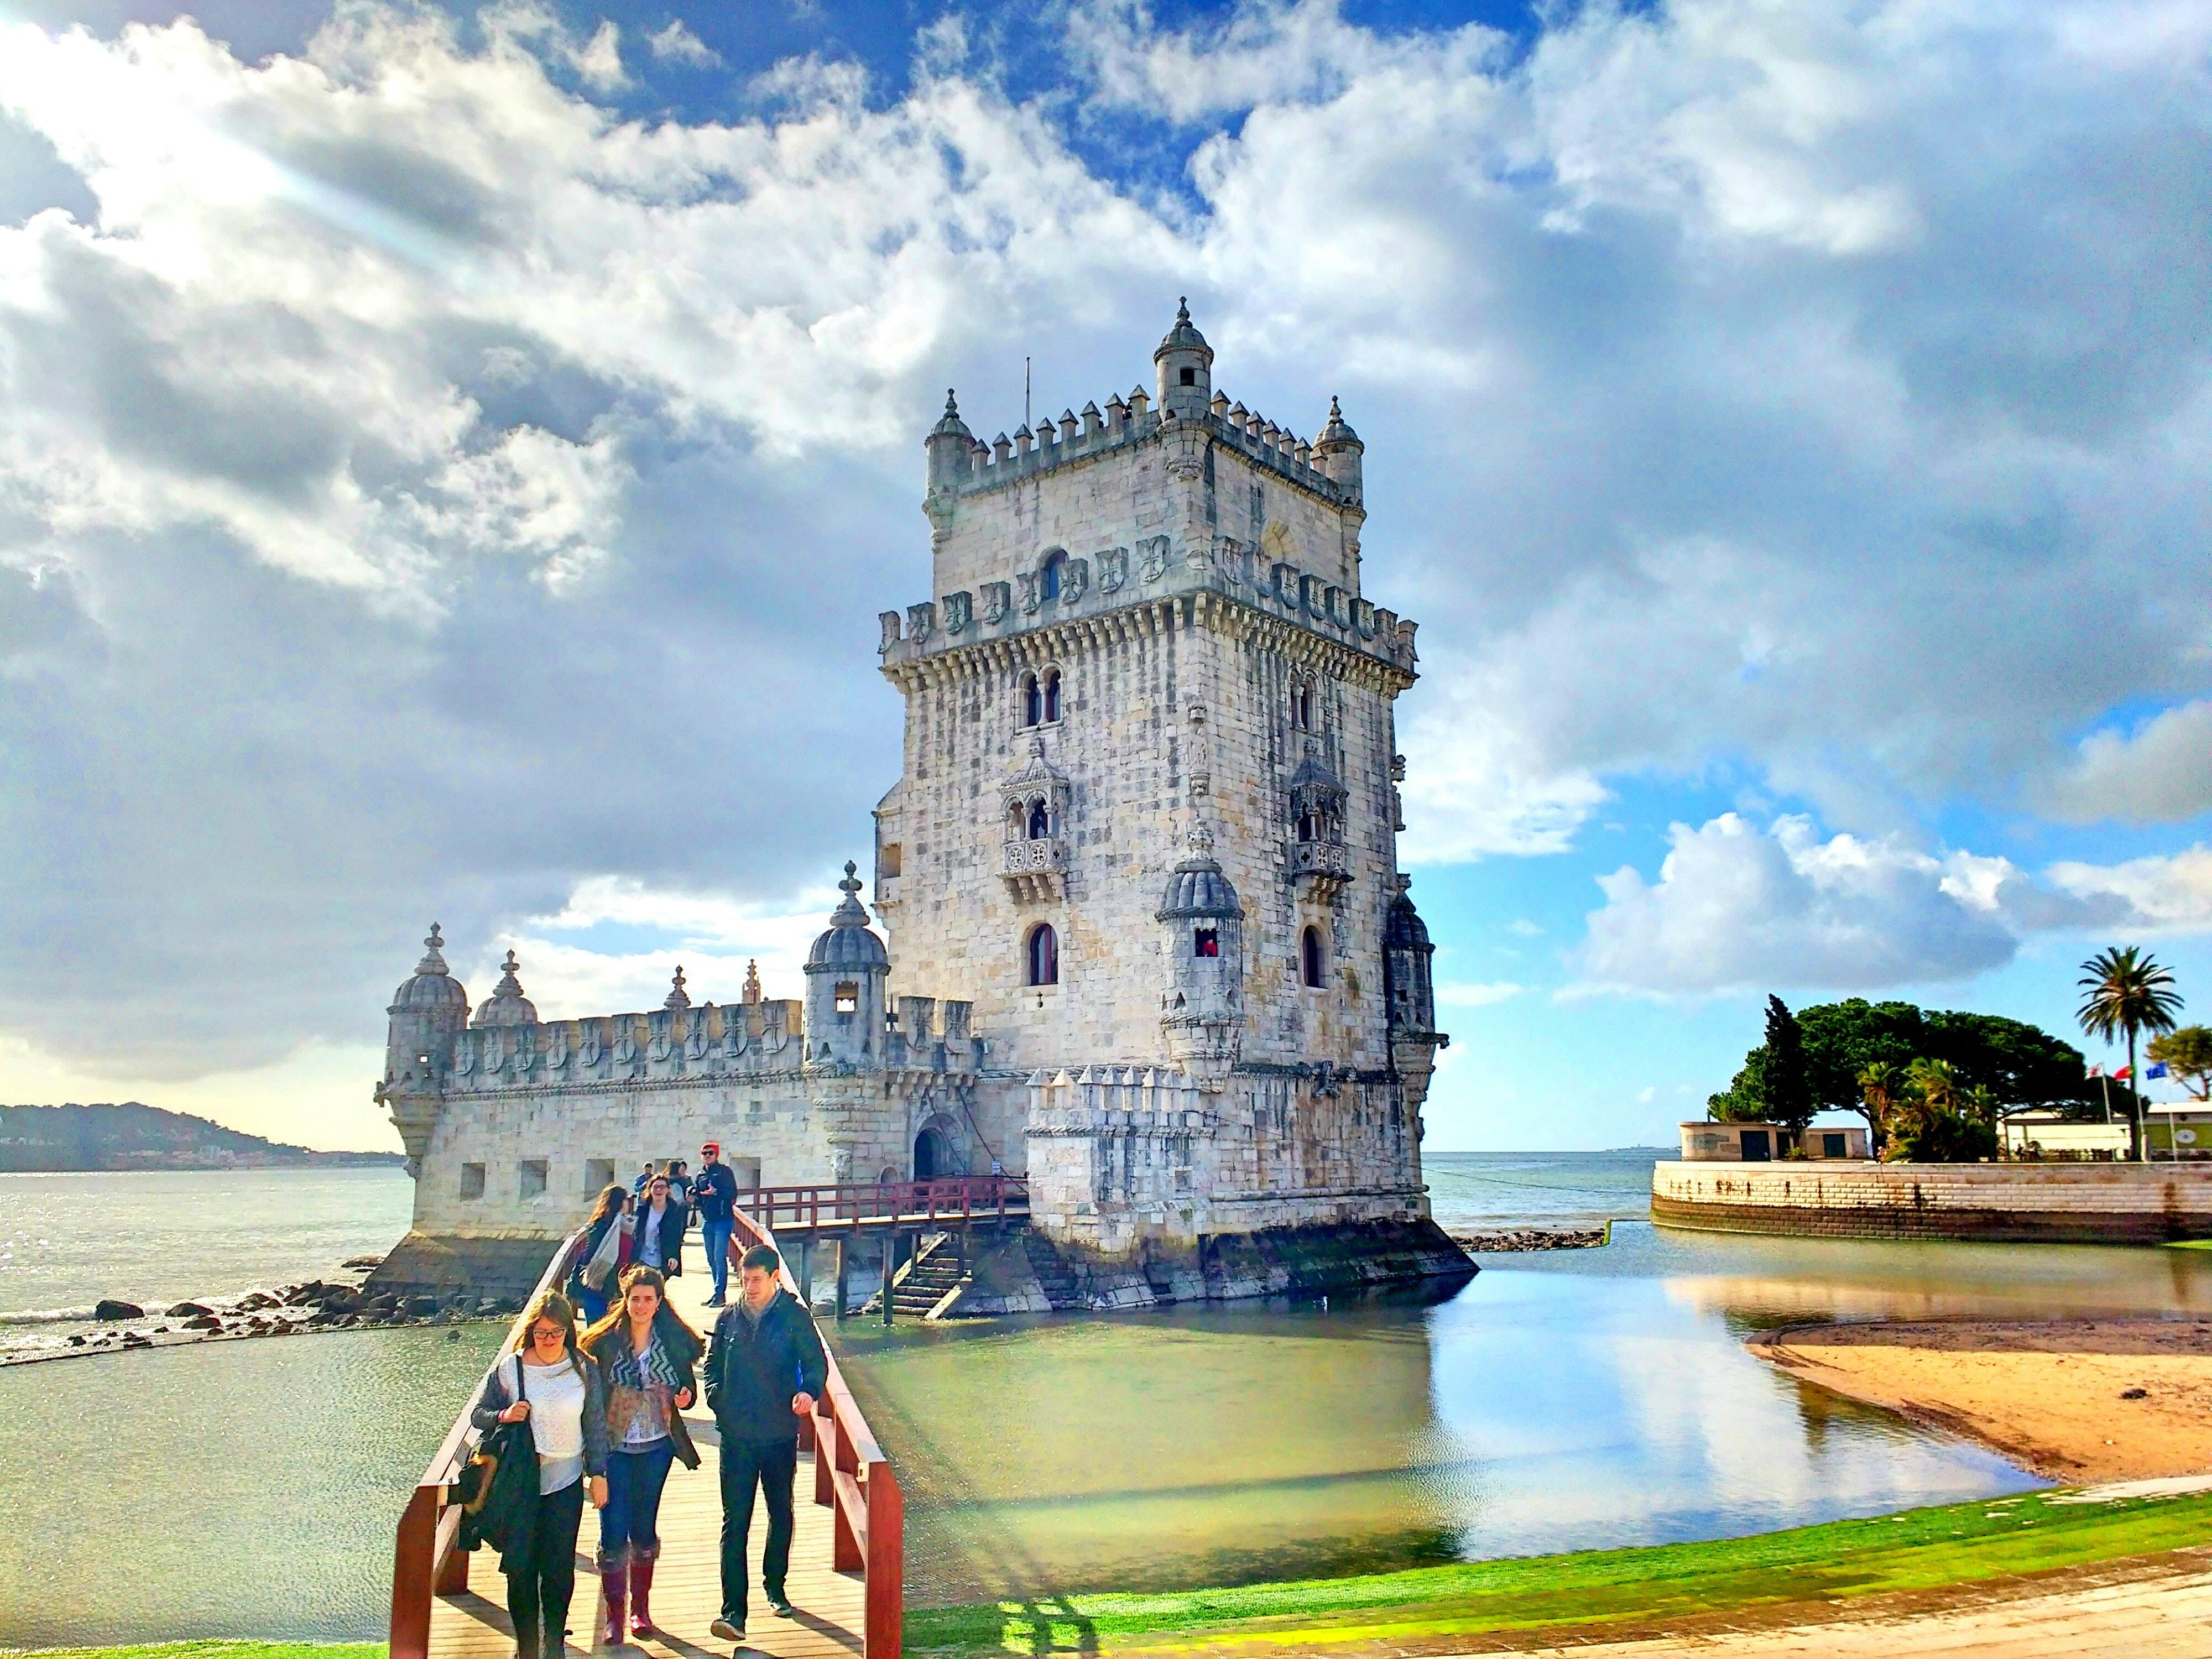 Belem Free Tour, place of discoveries